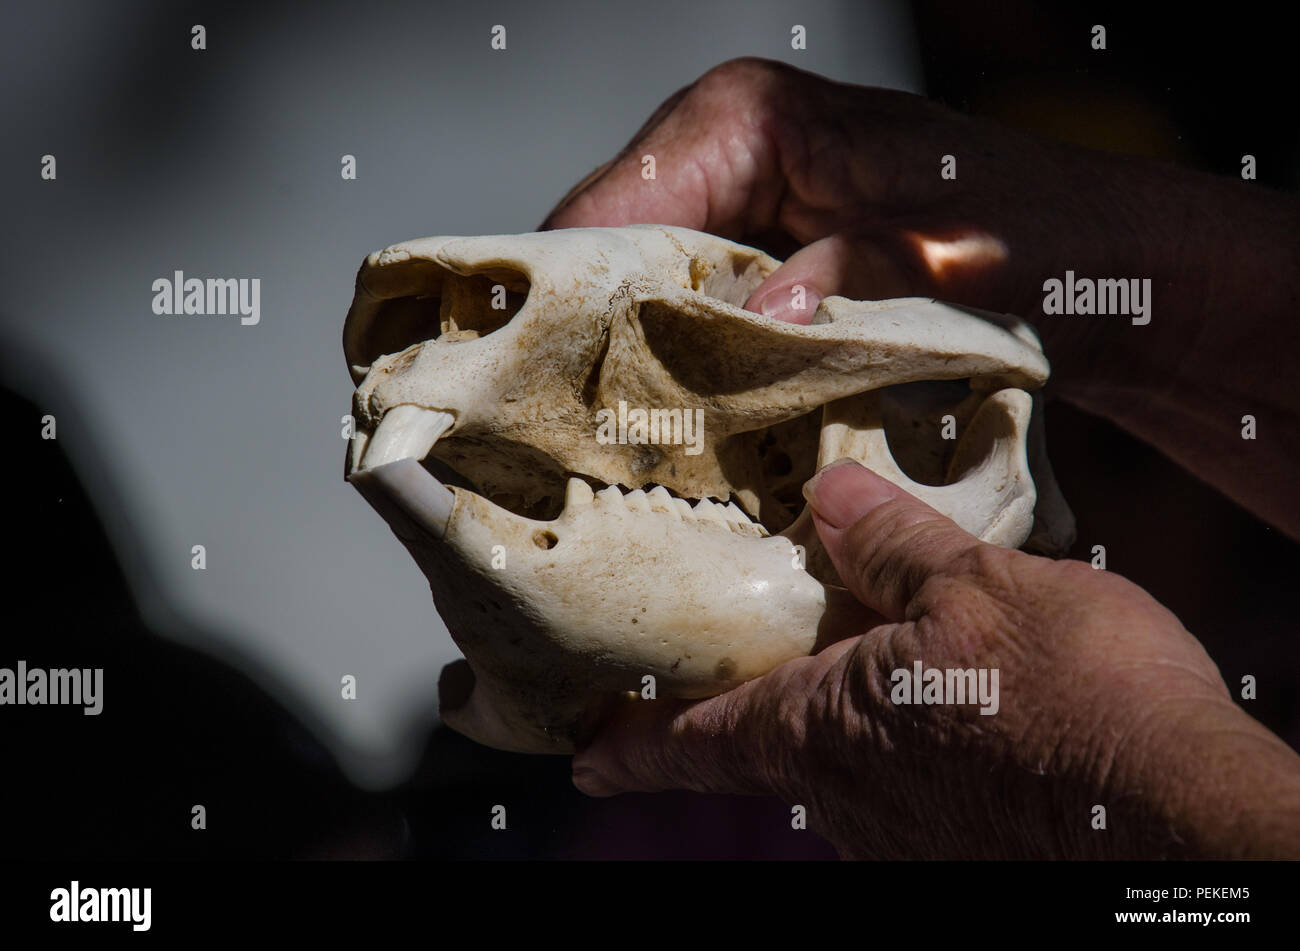 Wombat skull held in hands as it is displayed to kids during outdoors school holiday educational program on native Australian animals. - Stock Image